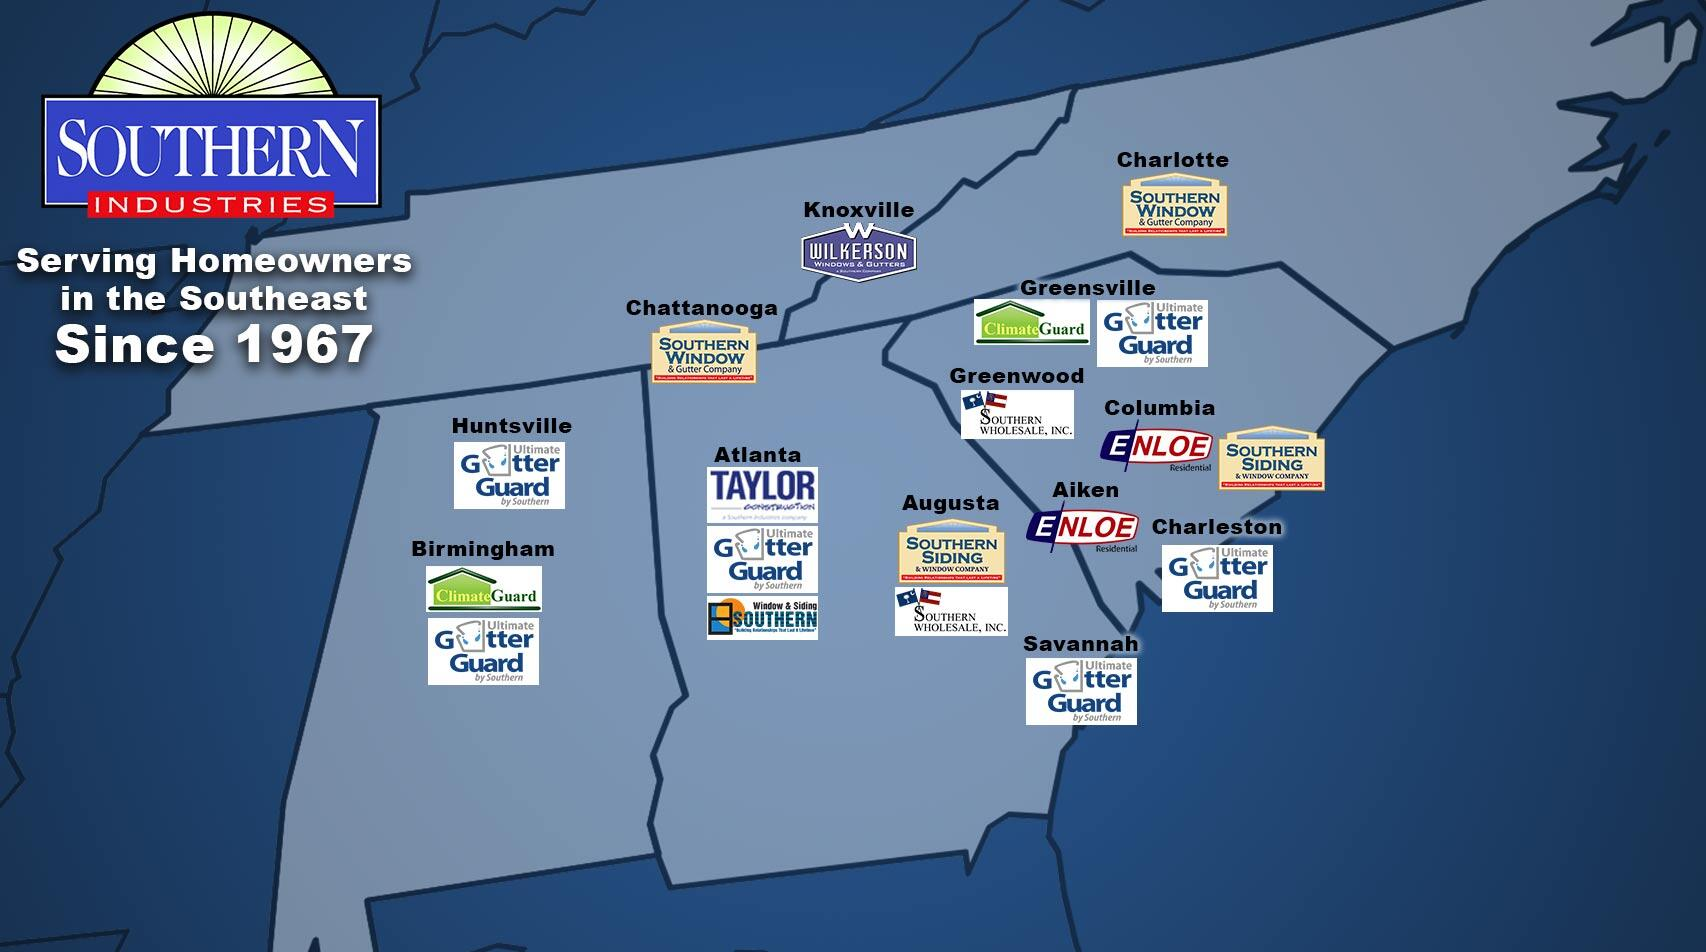 Southern Industries Southeastern Locations Map